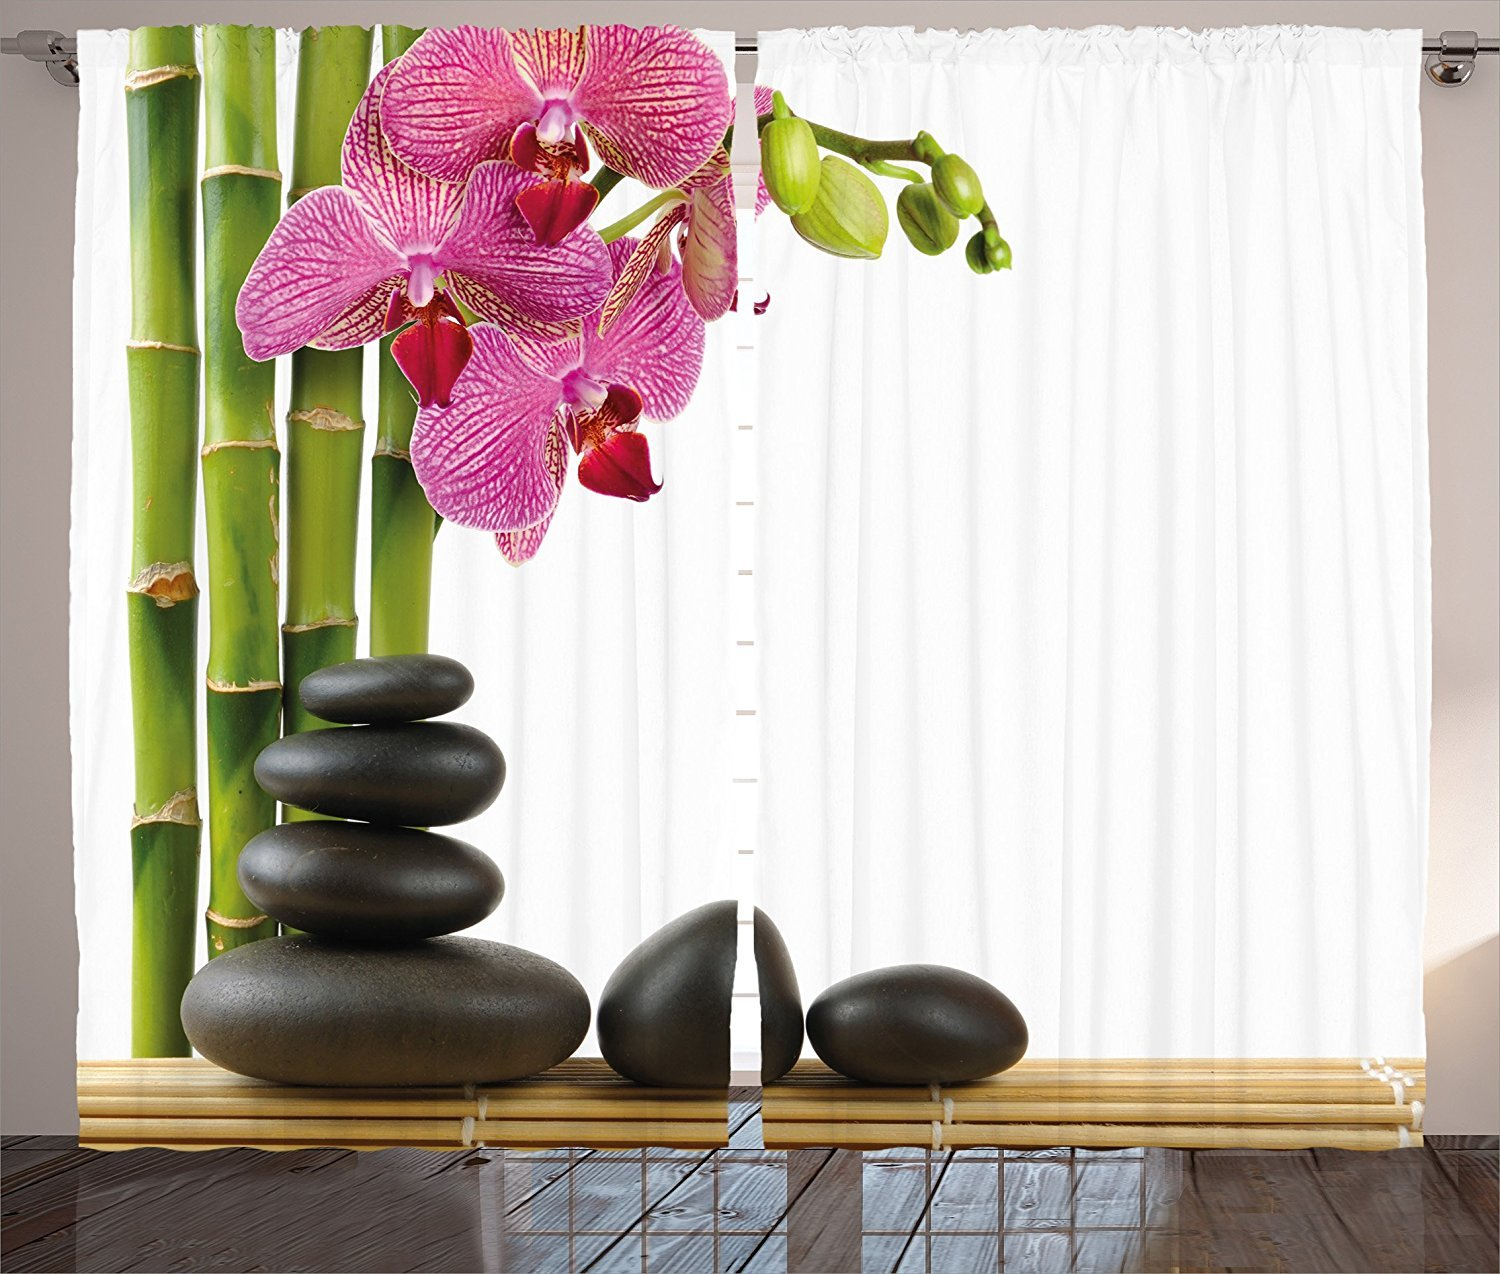 Spa Decor Curtains Beautiful Pink Orchid with Bamboos and Black Hot Stone Massage Image Living Room Bedroom Window Drapes 2 Panel Set Green Fuchsia